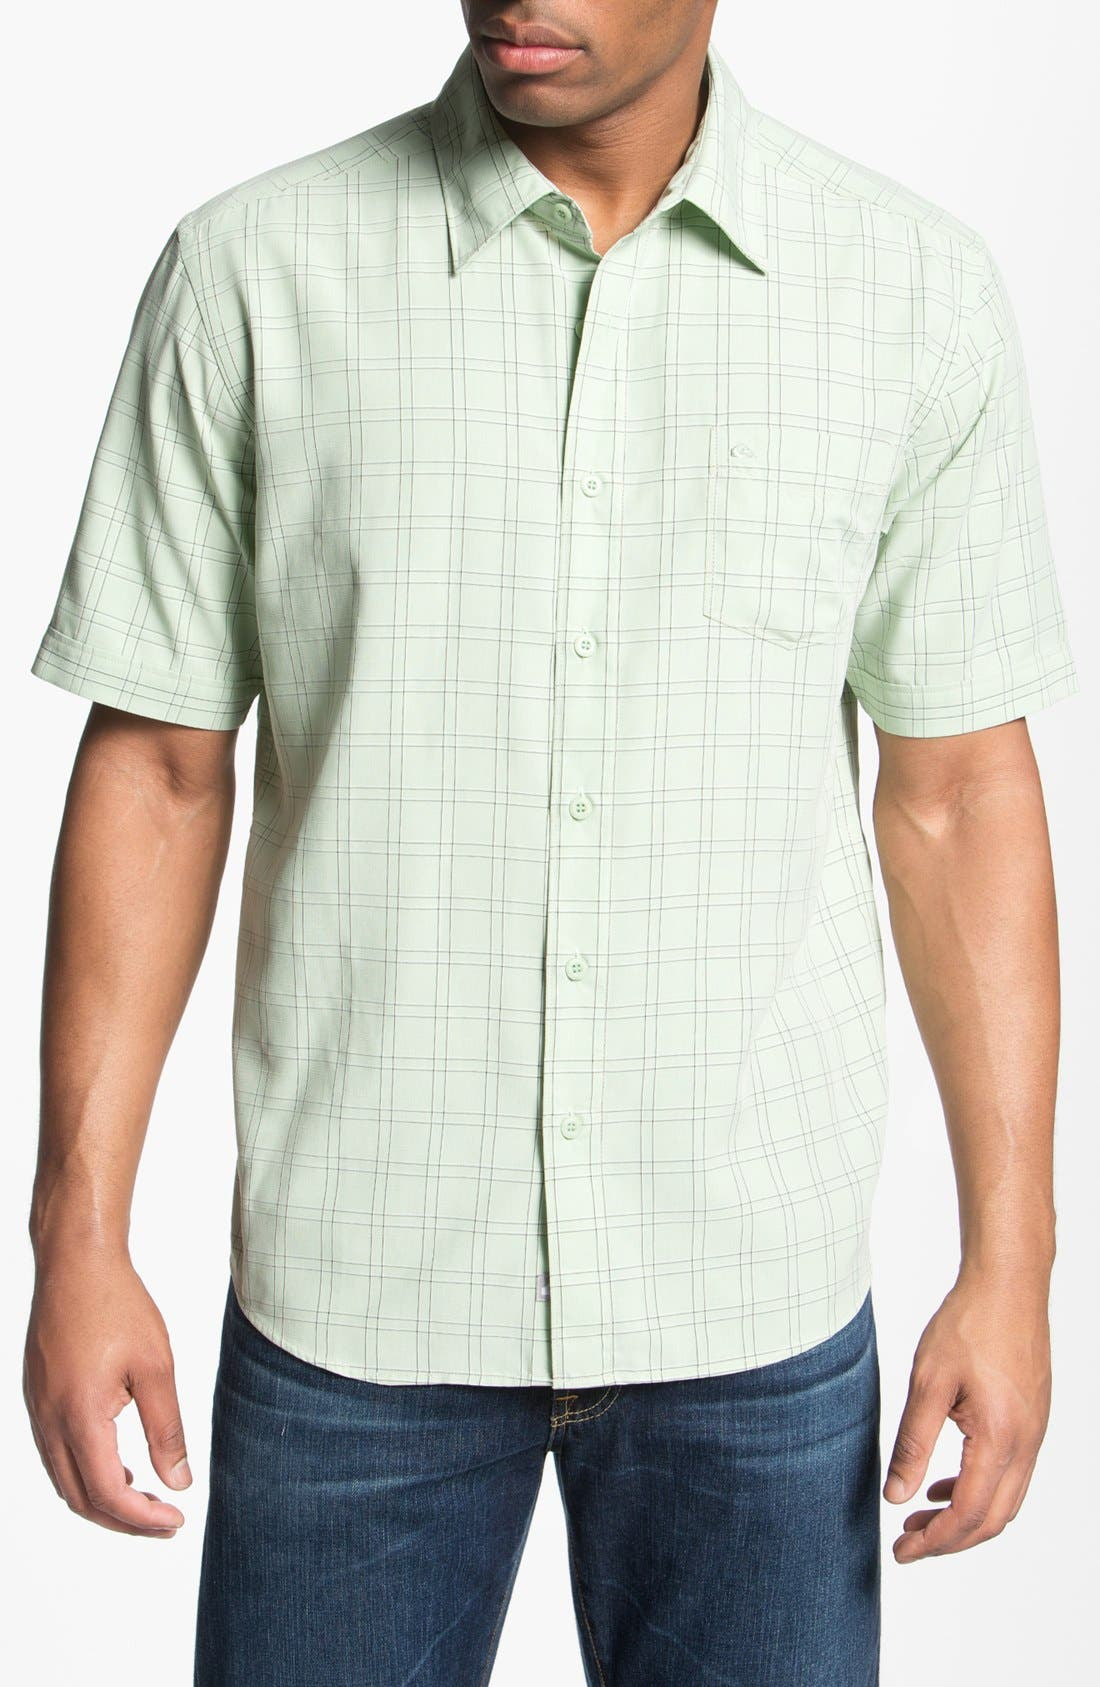 Alternate Image 1 Selected - Quiksilver Waterman Collection 'Kendalls Right' Short Sleeve Sport Shirt